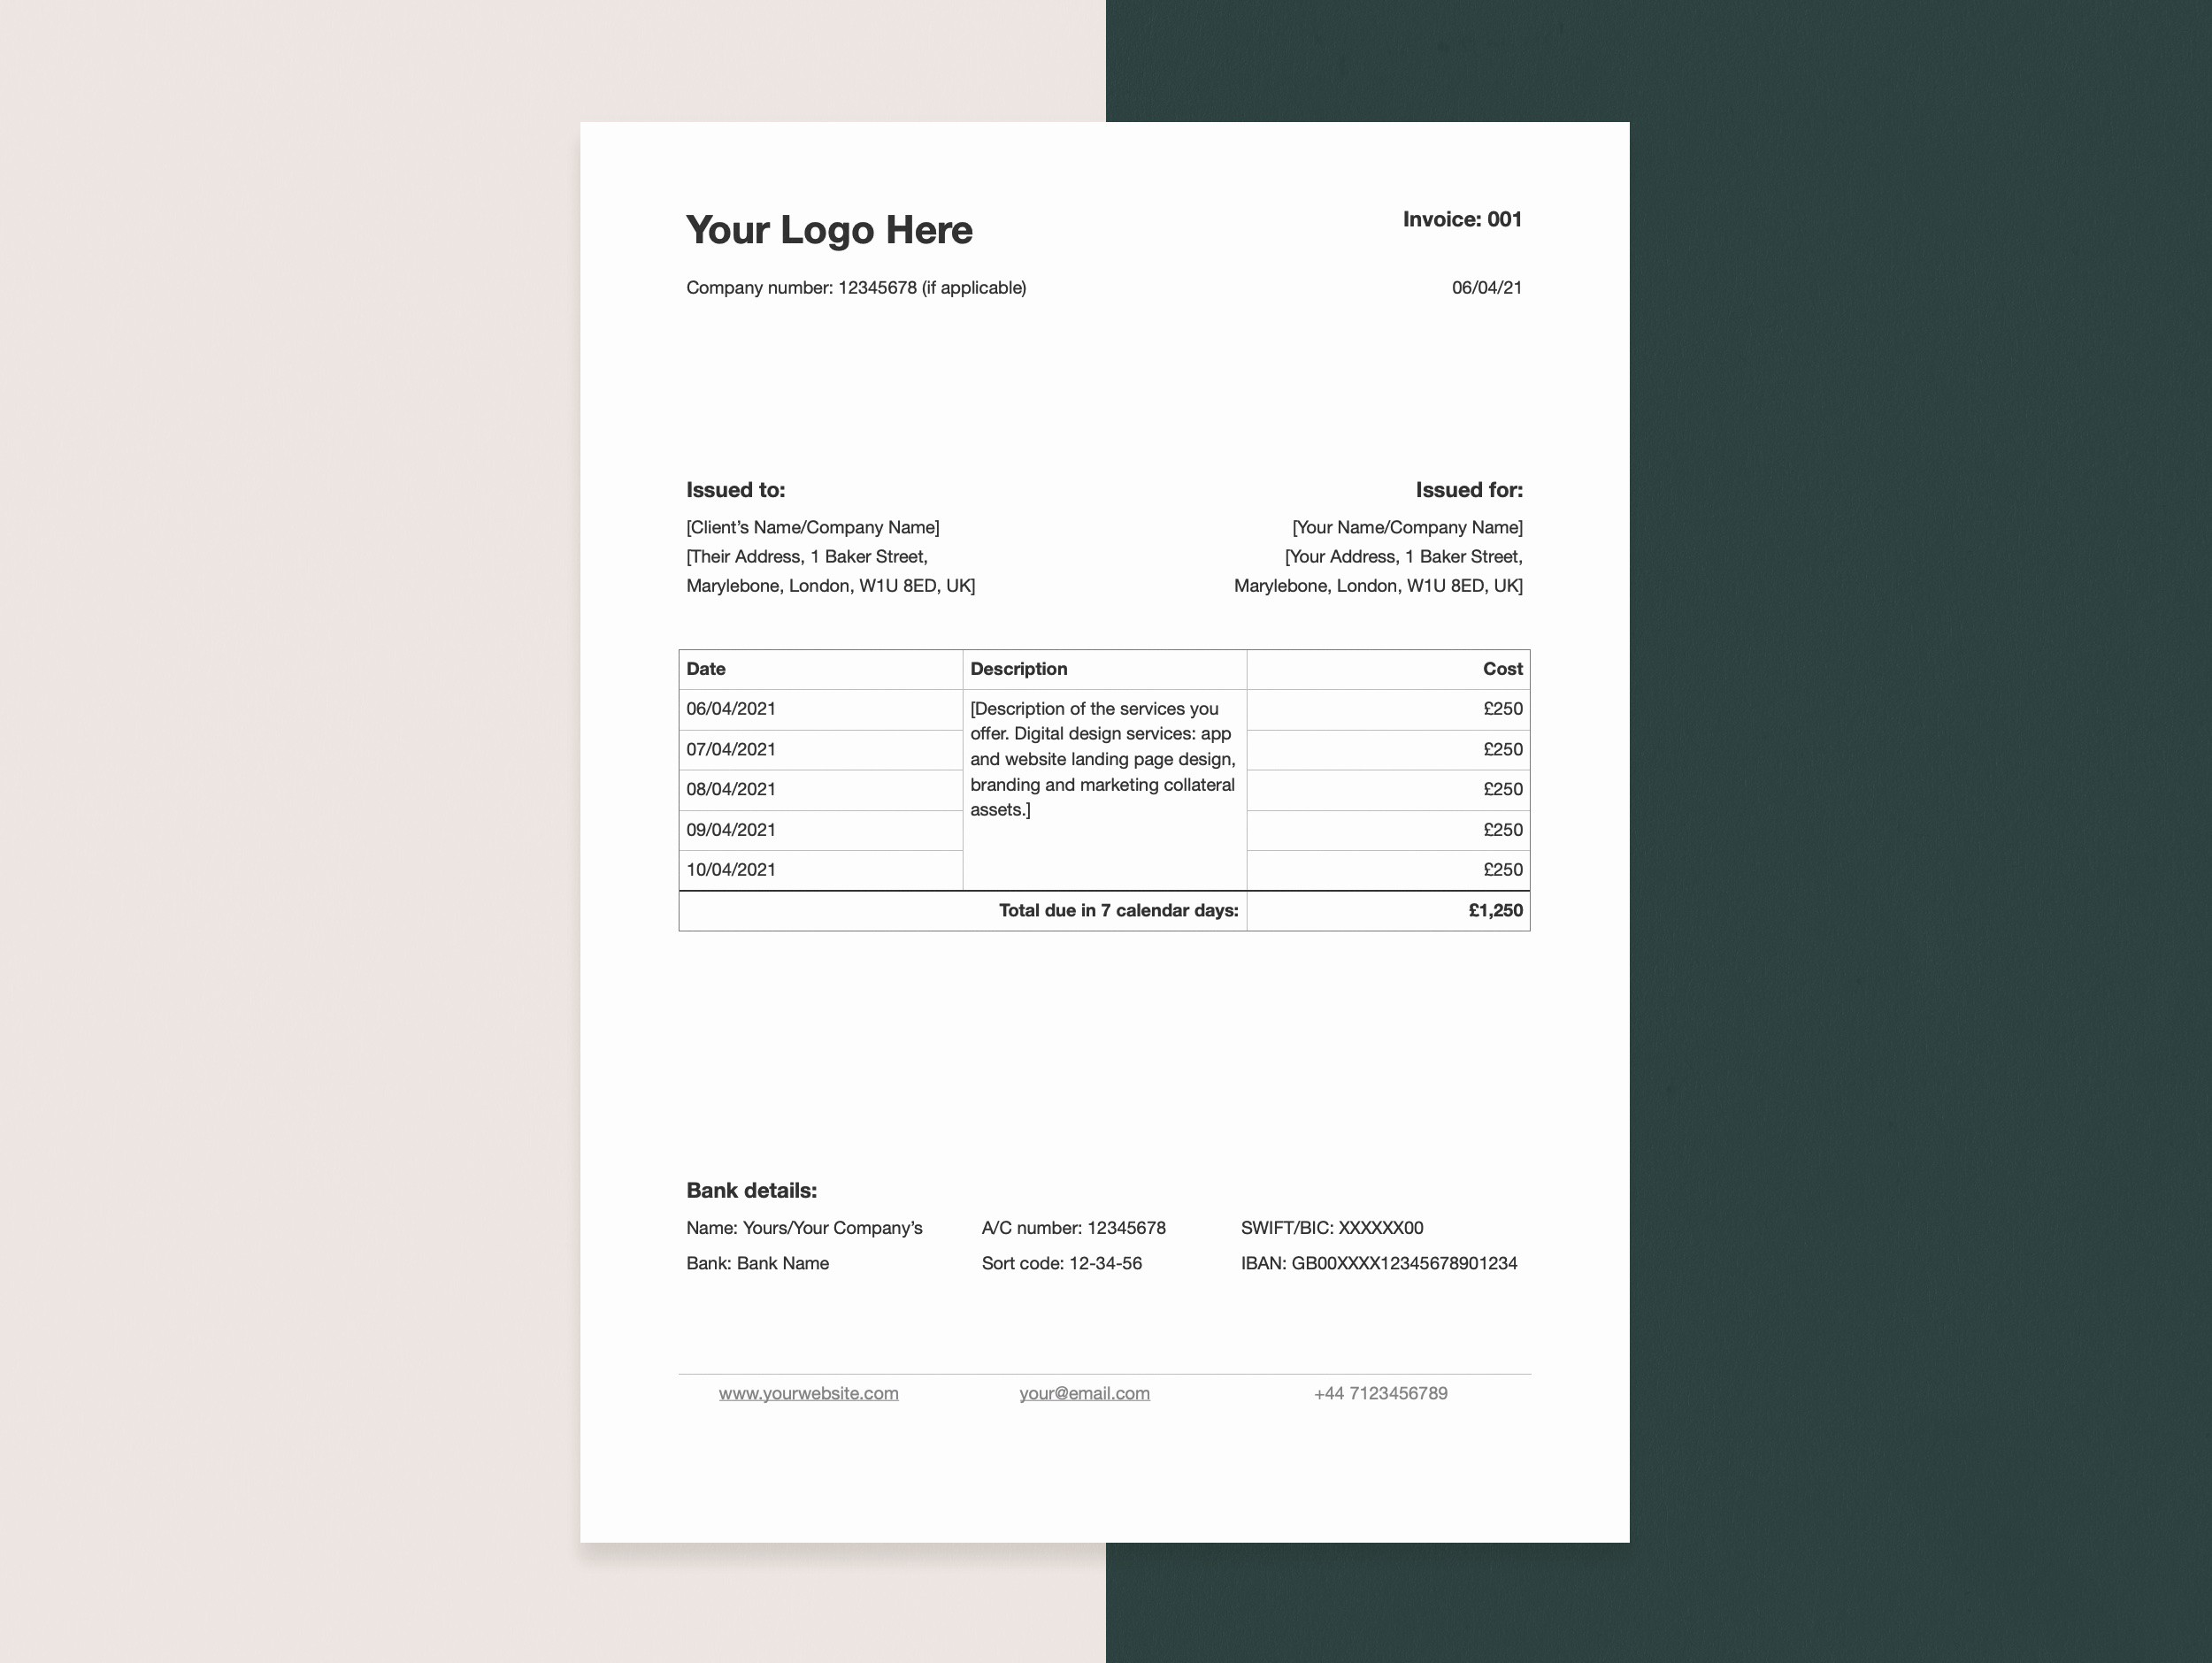 An invoice template